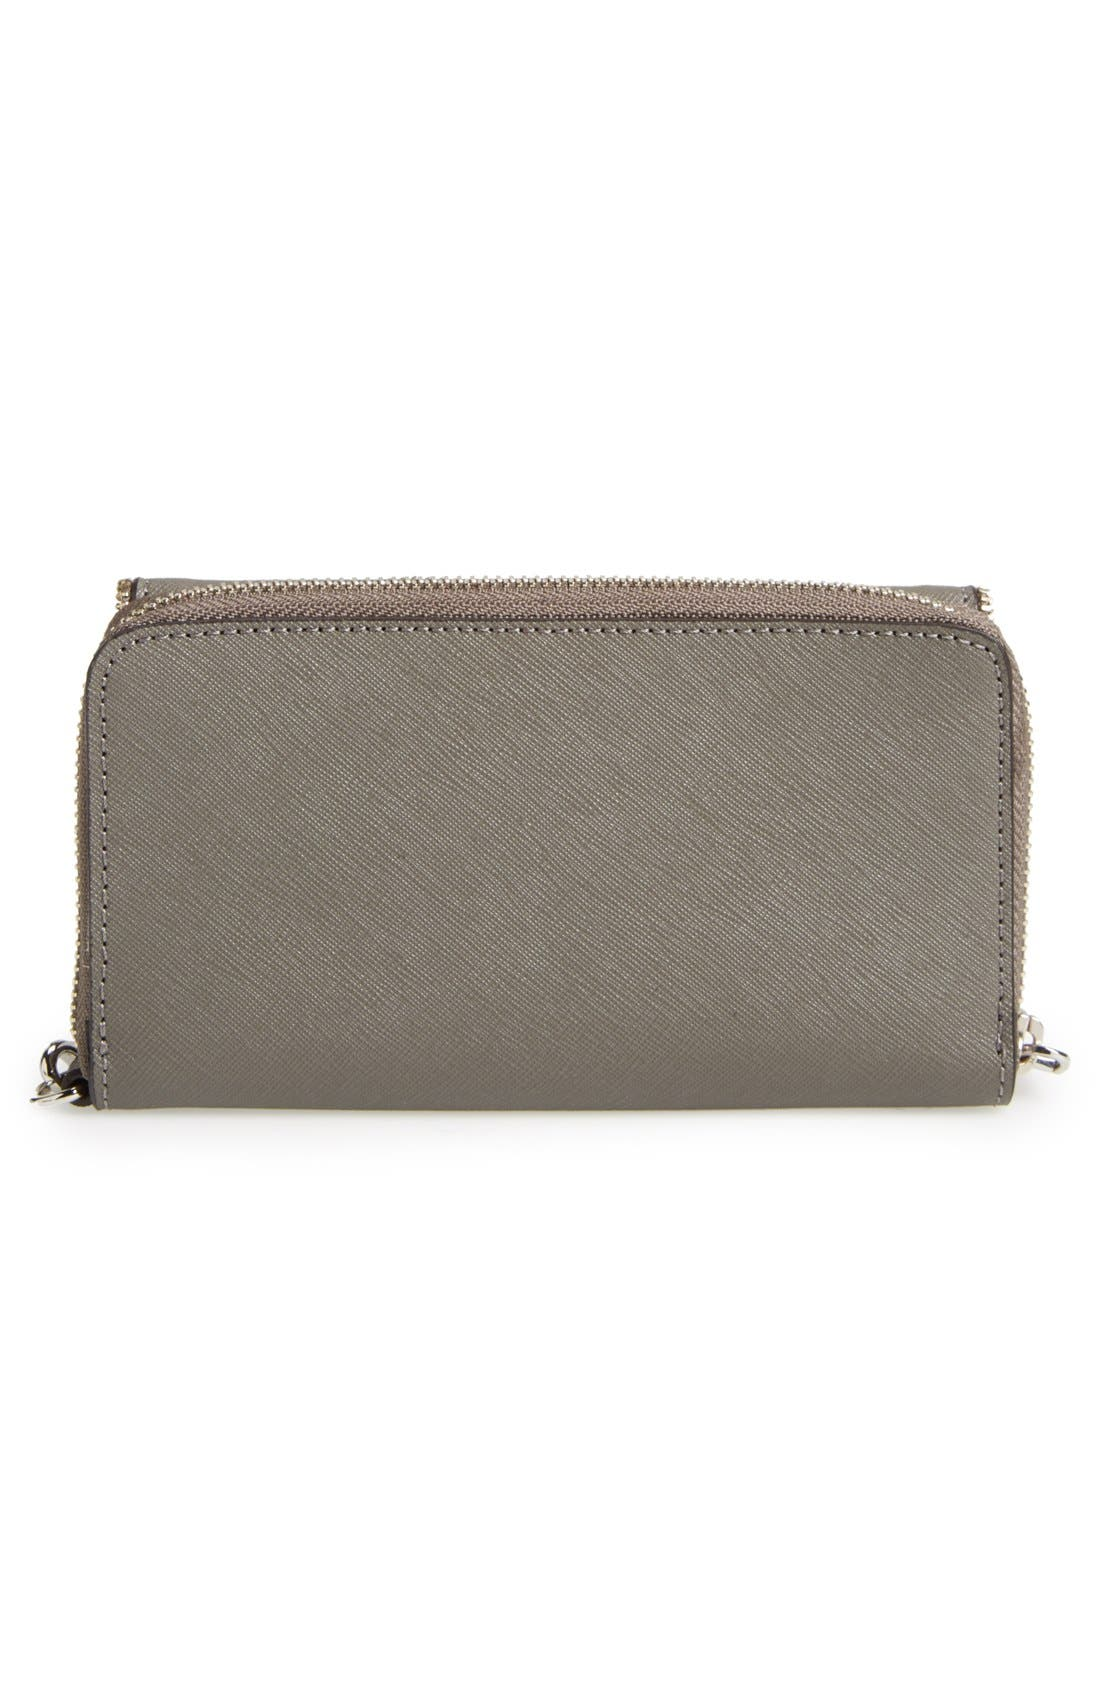 Alternate Image 3  - Rebecca Minkoff 'Zoey' Tech Wristlet